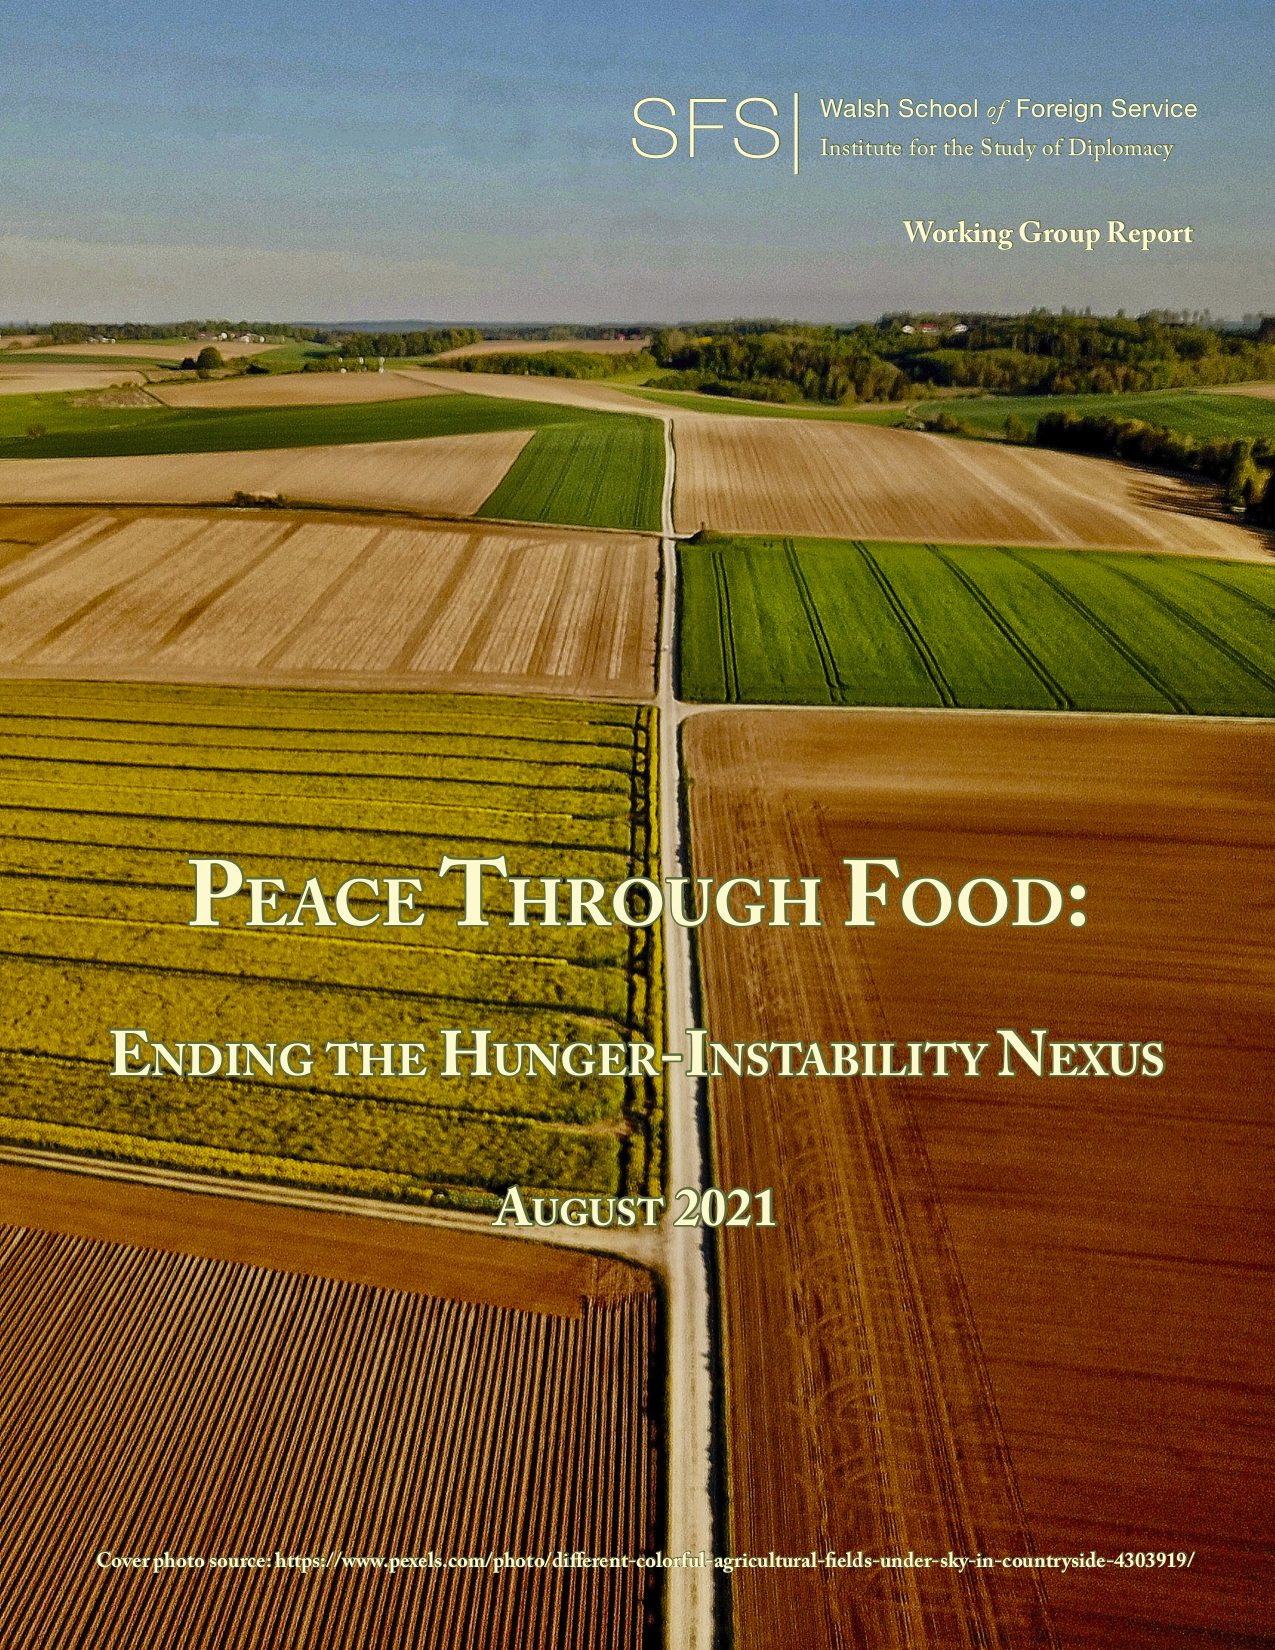 Peace Through Food: Ending the Hunger-Instability Nexus. Farmland with tracks between each field.